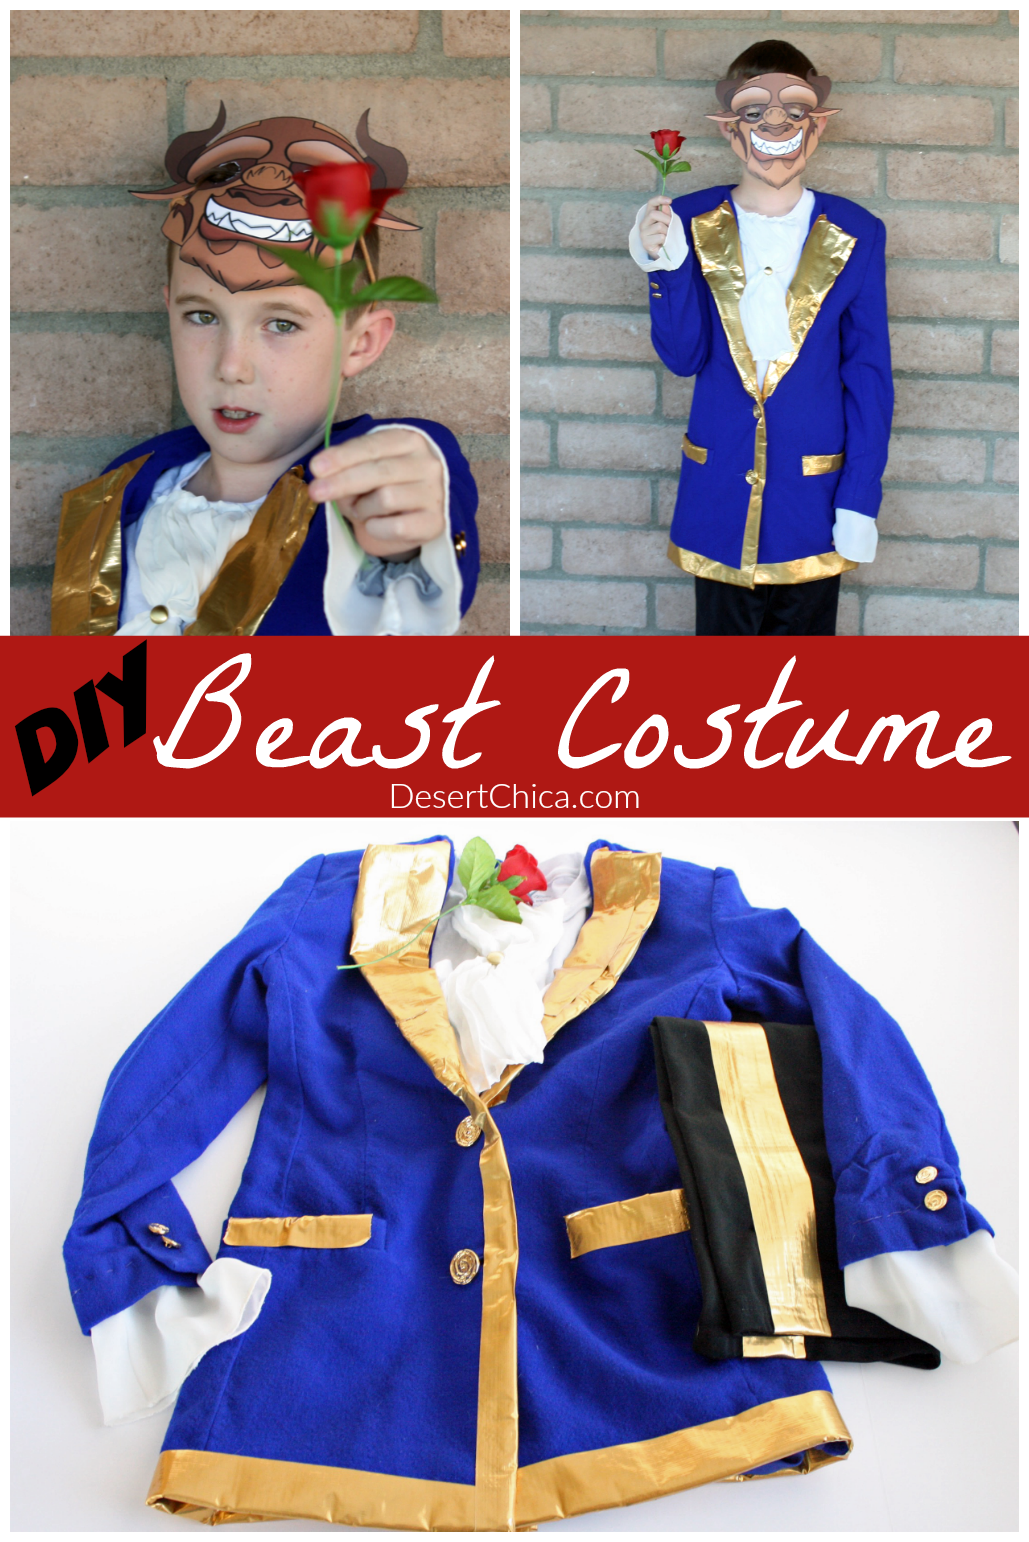 Diy beast costume desert chica beauty and the beast might be a fun costume theme with disneys latest live action movie solutioingenieria Image collections